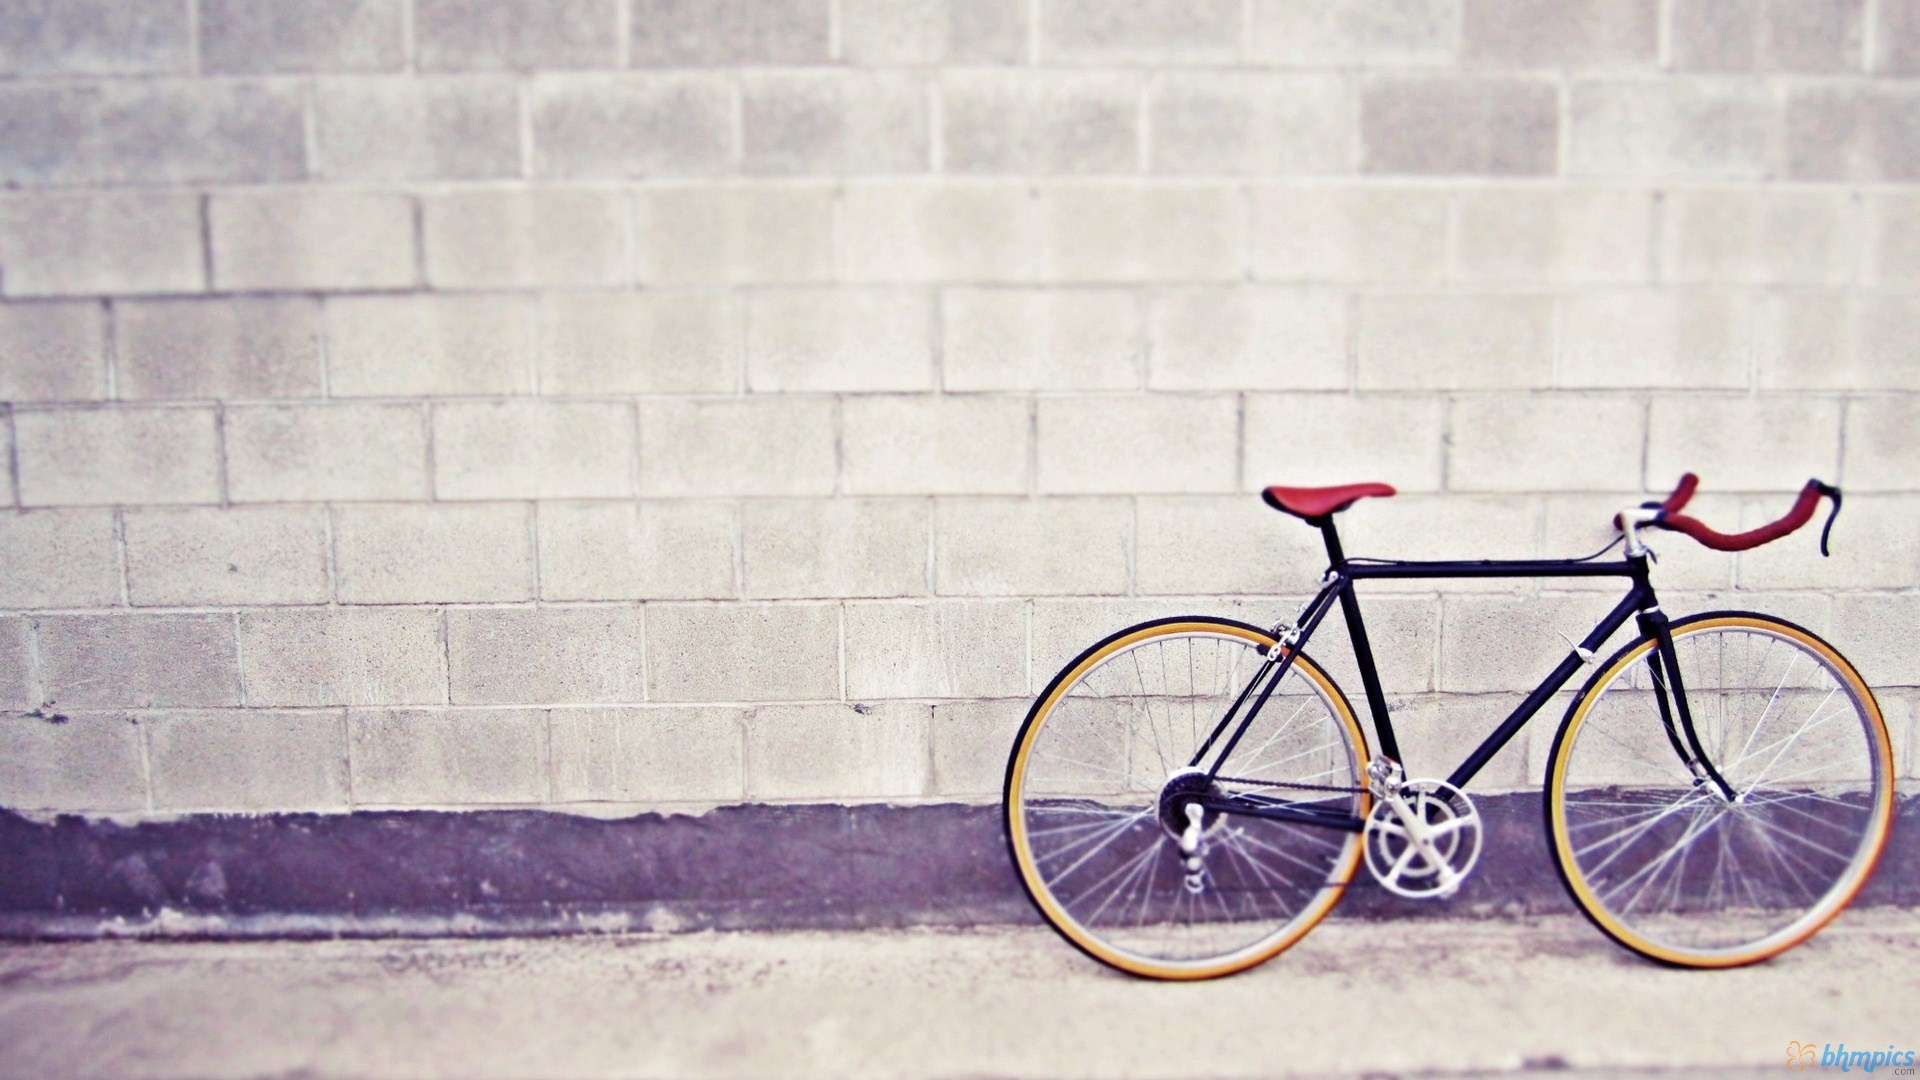 desktop fixie bike pics desktop fixie bike pictures wallpaper desktop 1920x1080